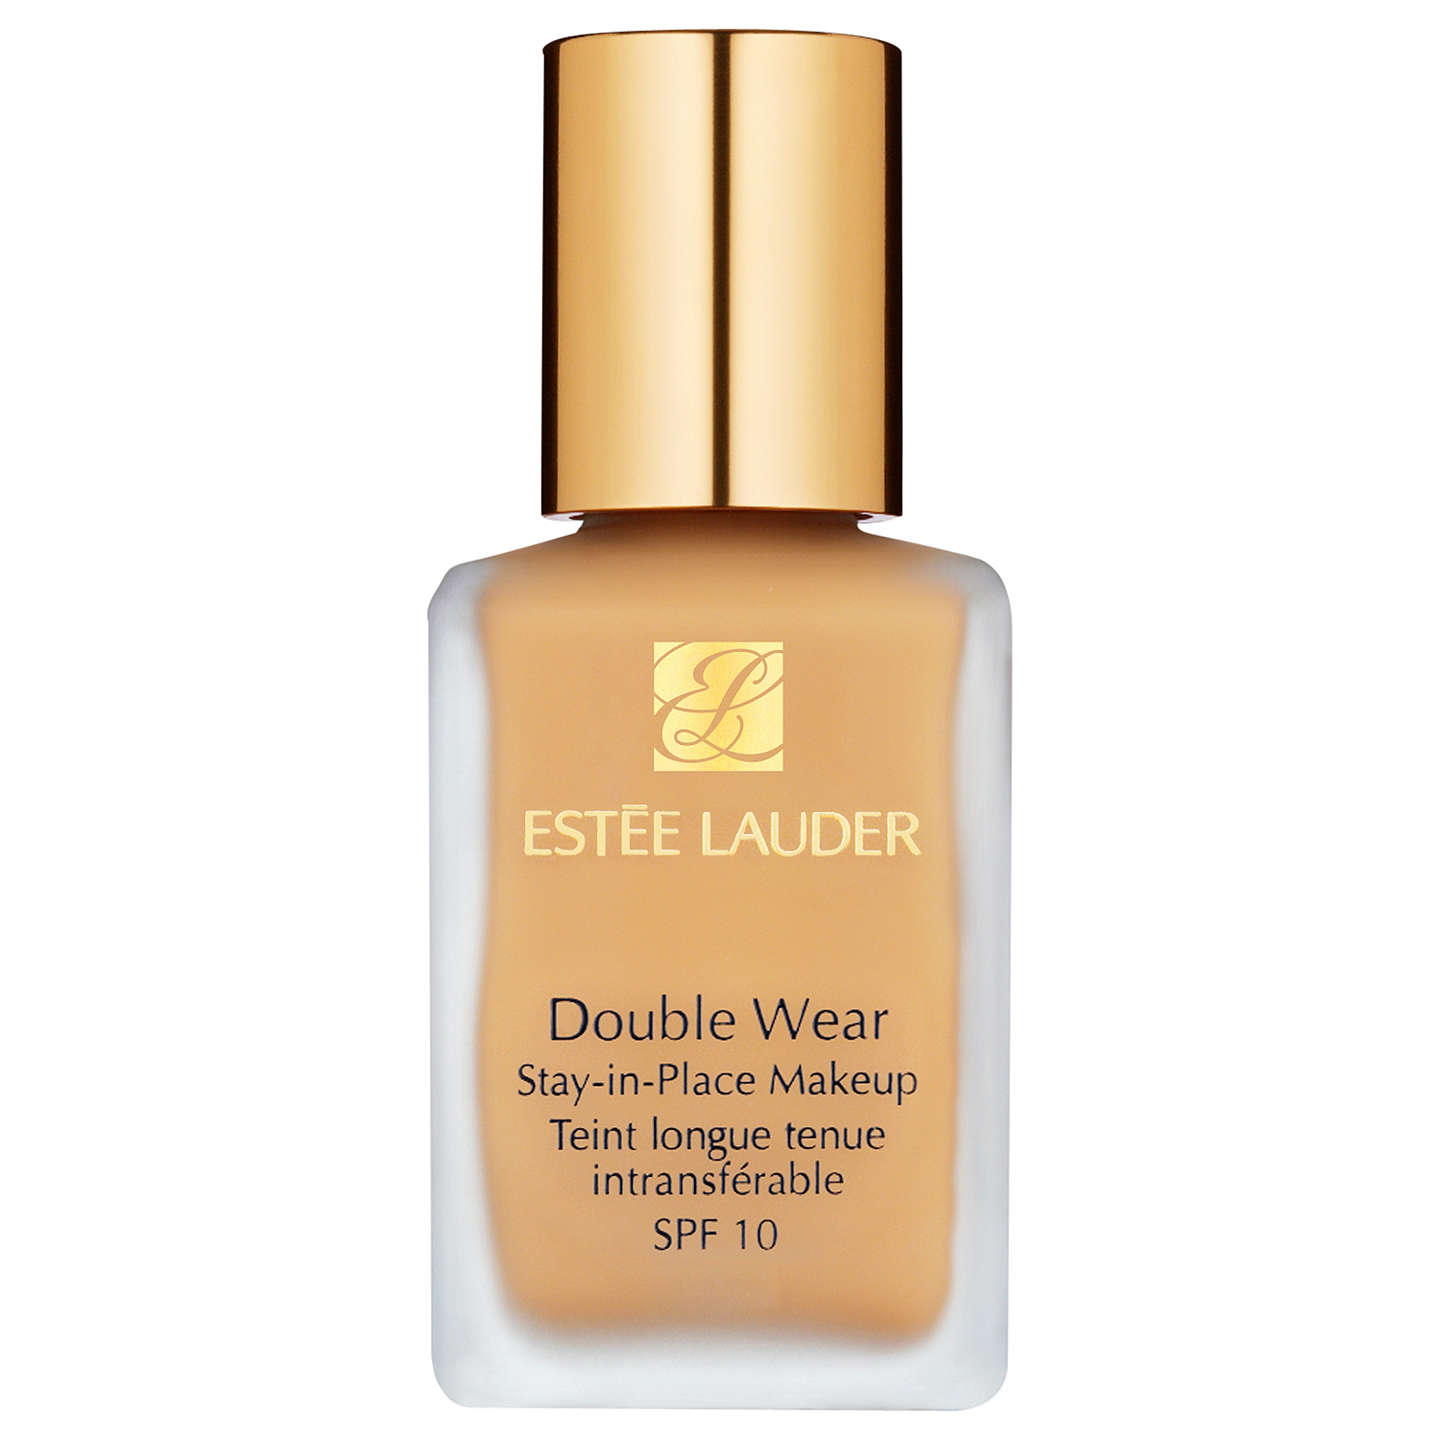 BuyEstée Lauder Double Wear Stay-In-Place Foundation Makeup SPF10, 1C0 Shell Online at johnlewis.com